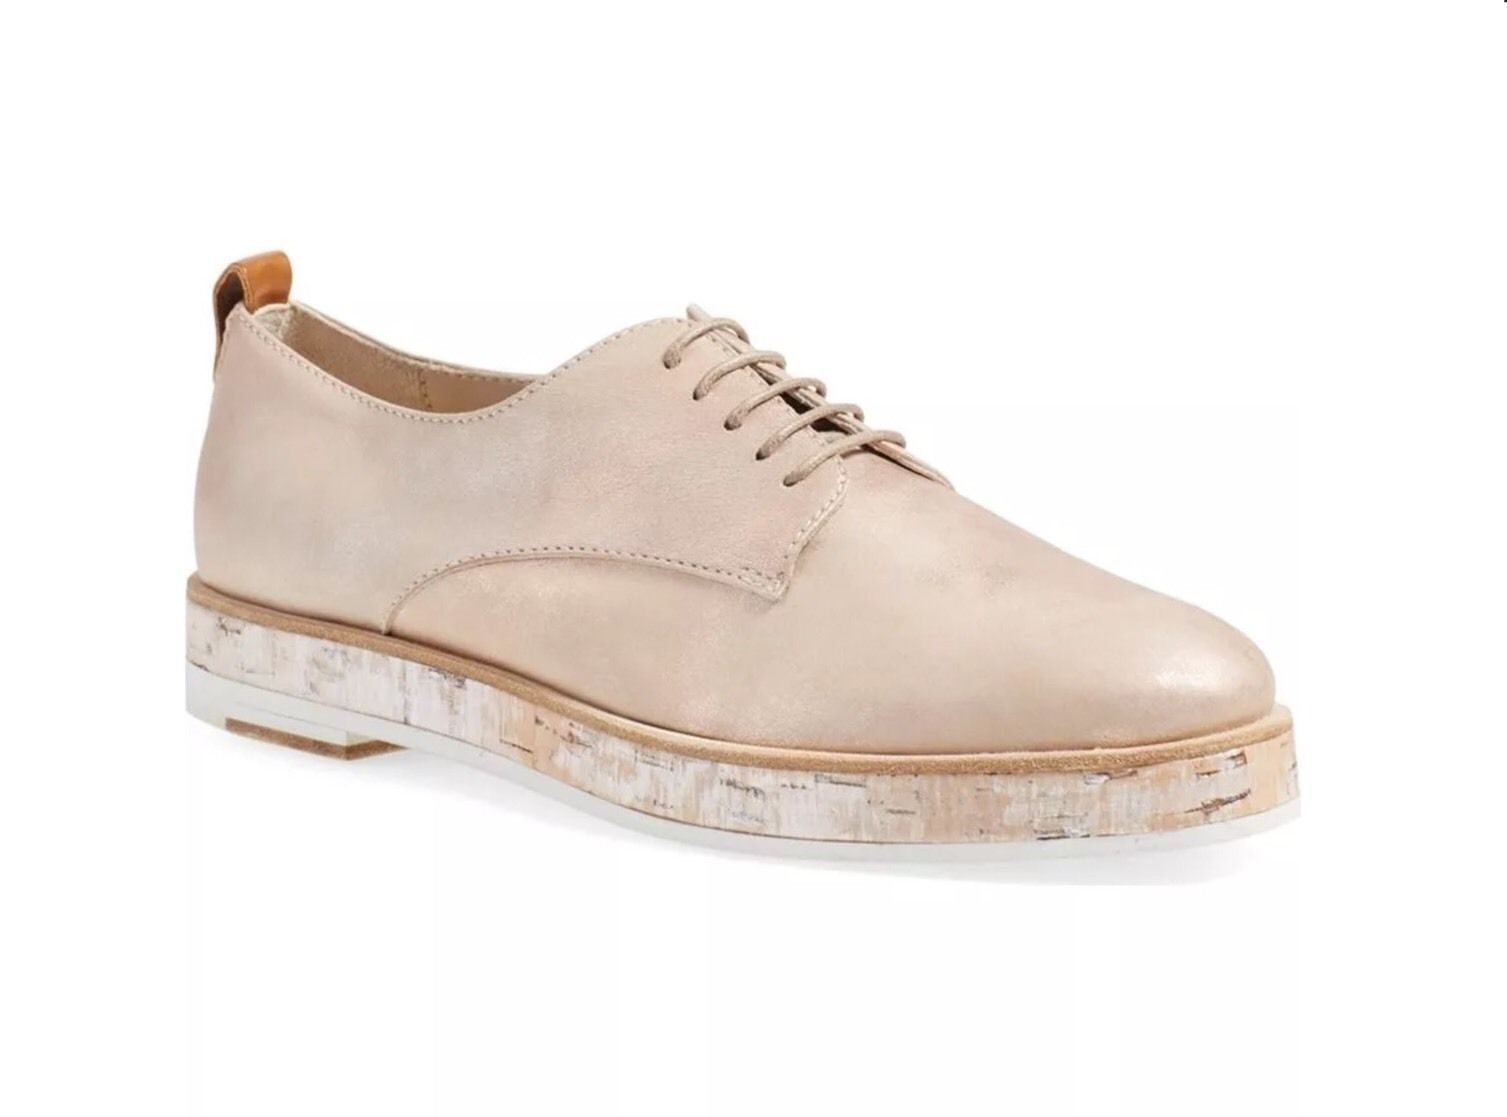 380 New Sz.6.5 AGL Double Sole Cork Platform Oxford Leather scarpe Nude Metallic